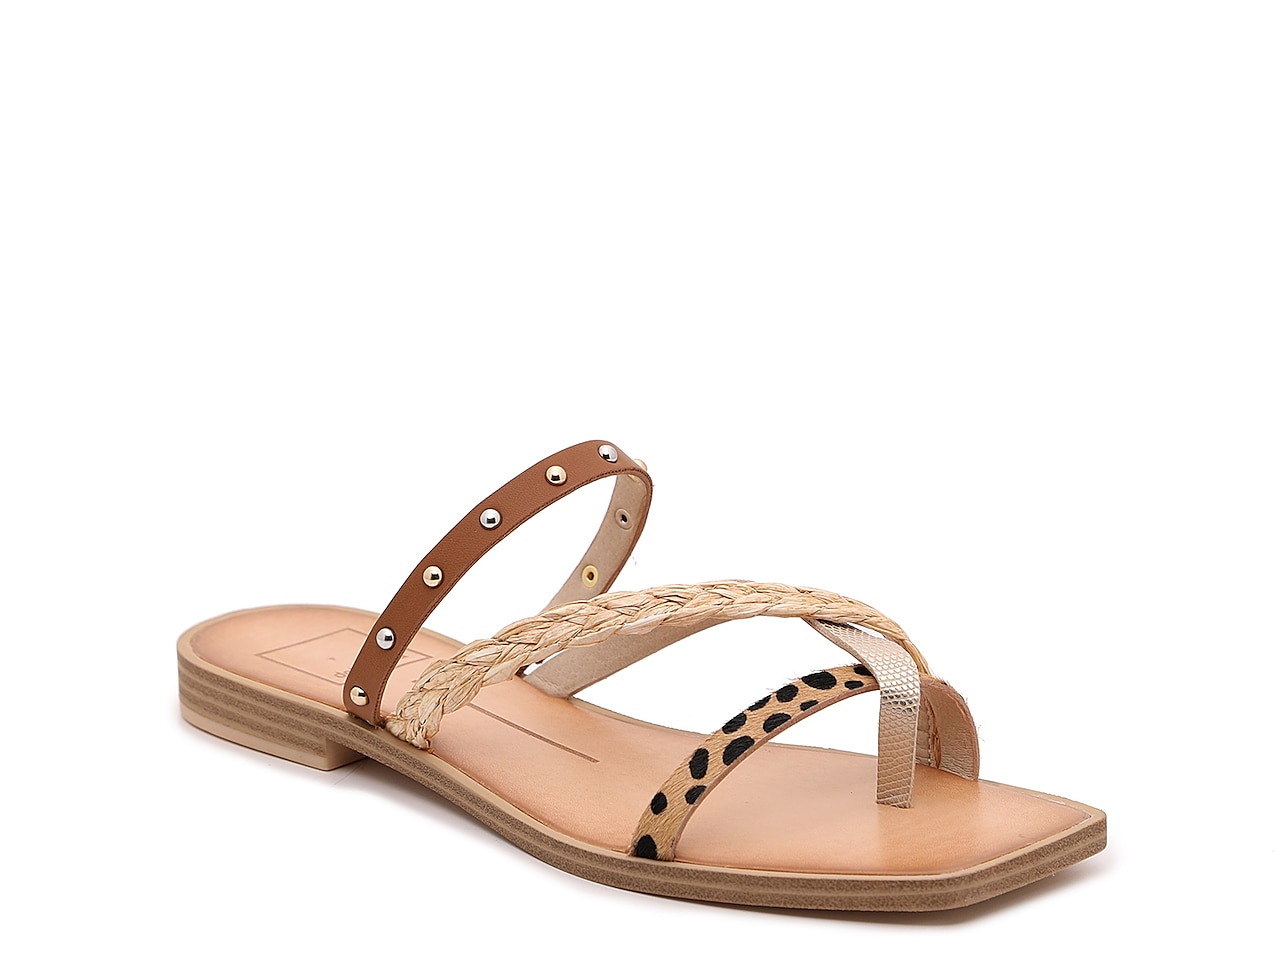 Up to 50% off Summer Styles at DSW!